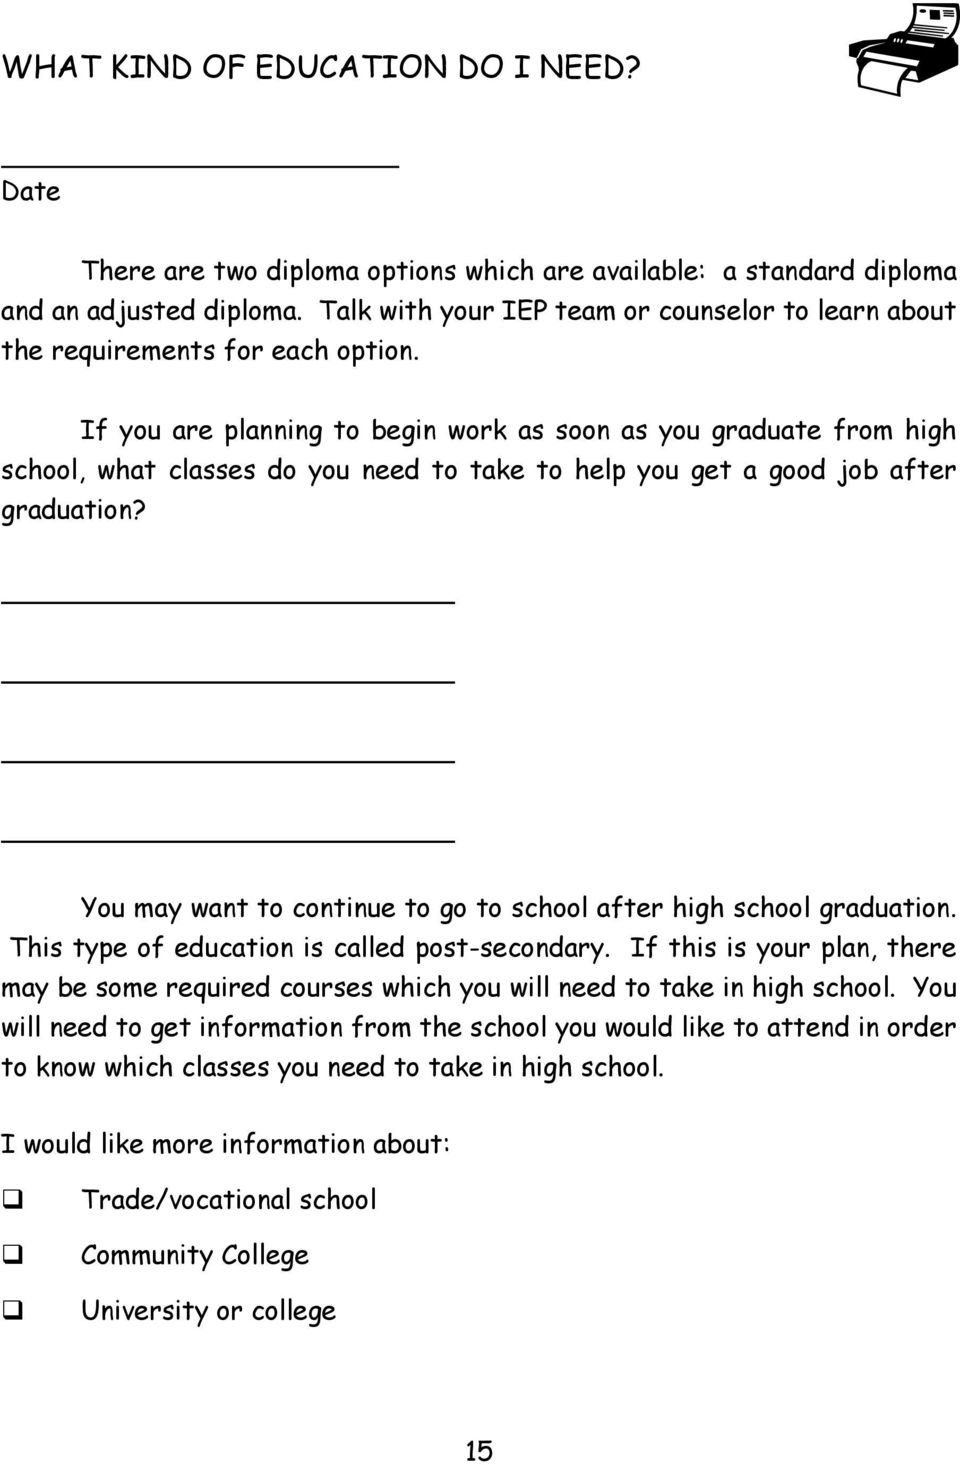 If you are planning to begin work as soon as you graduate from high school, what classes do you need to take to help you get a good job after graduation?